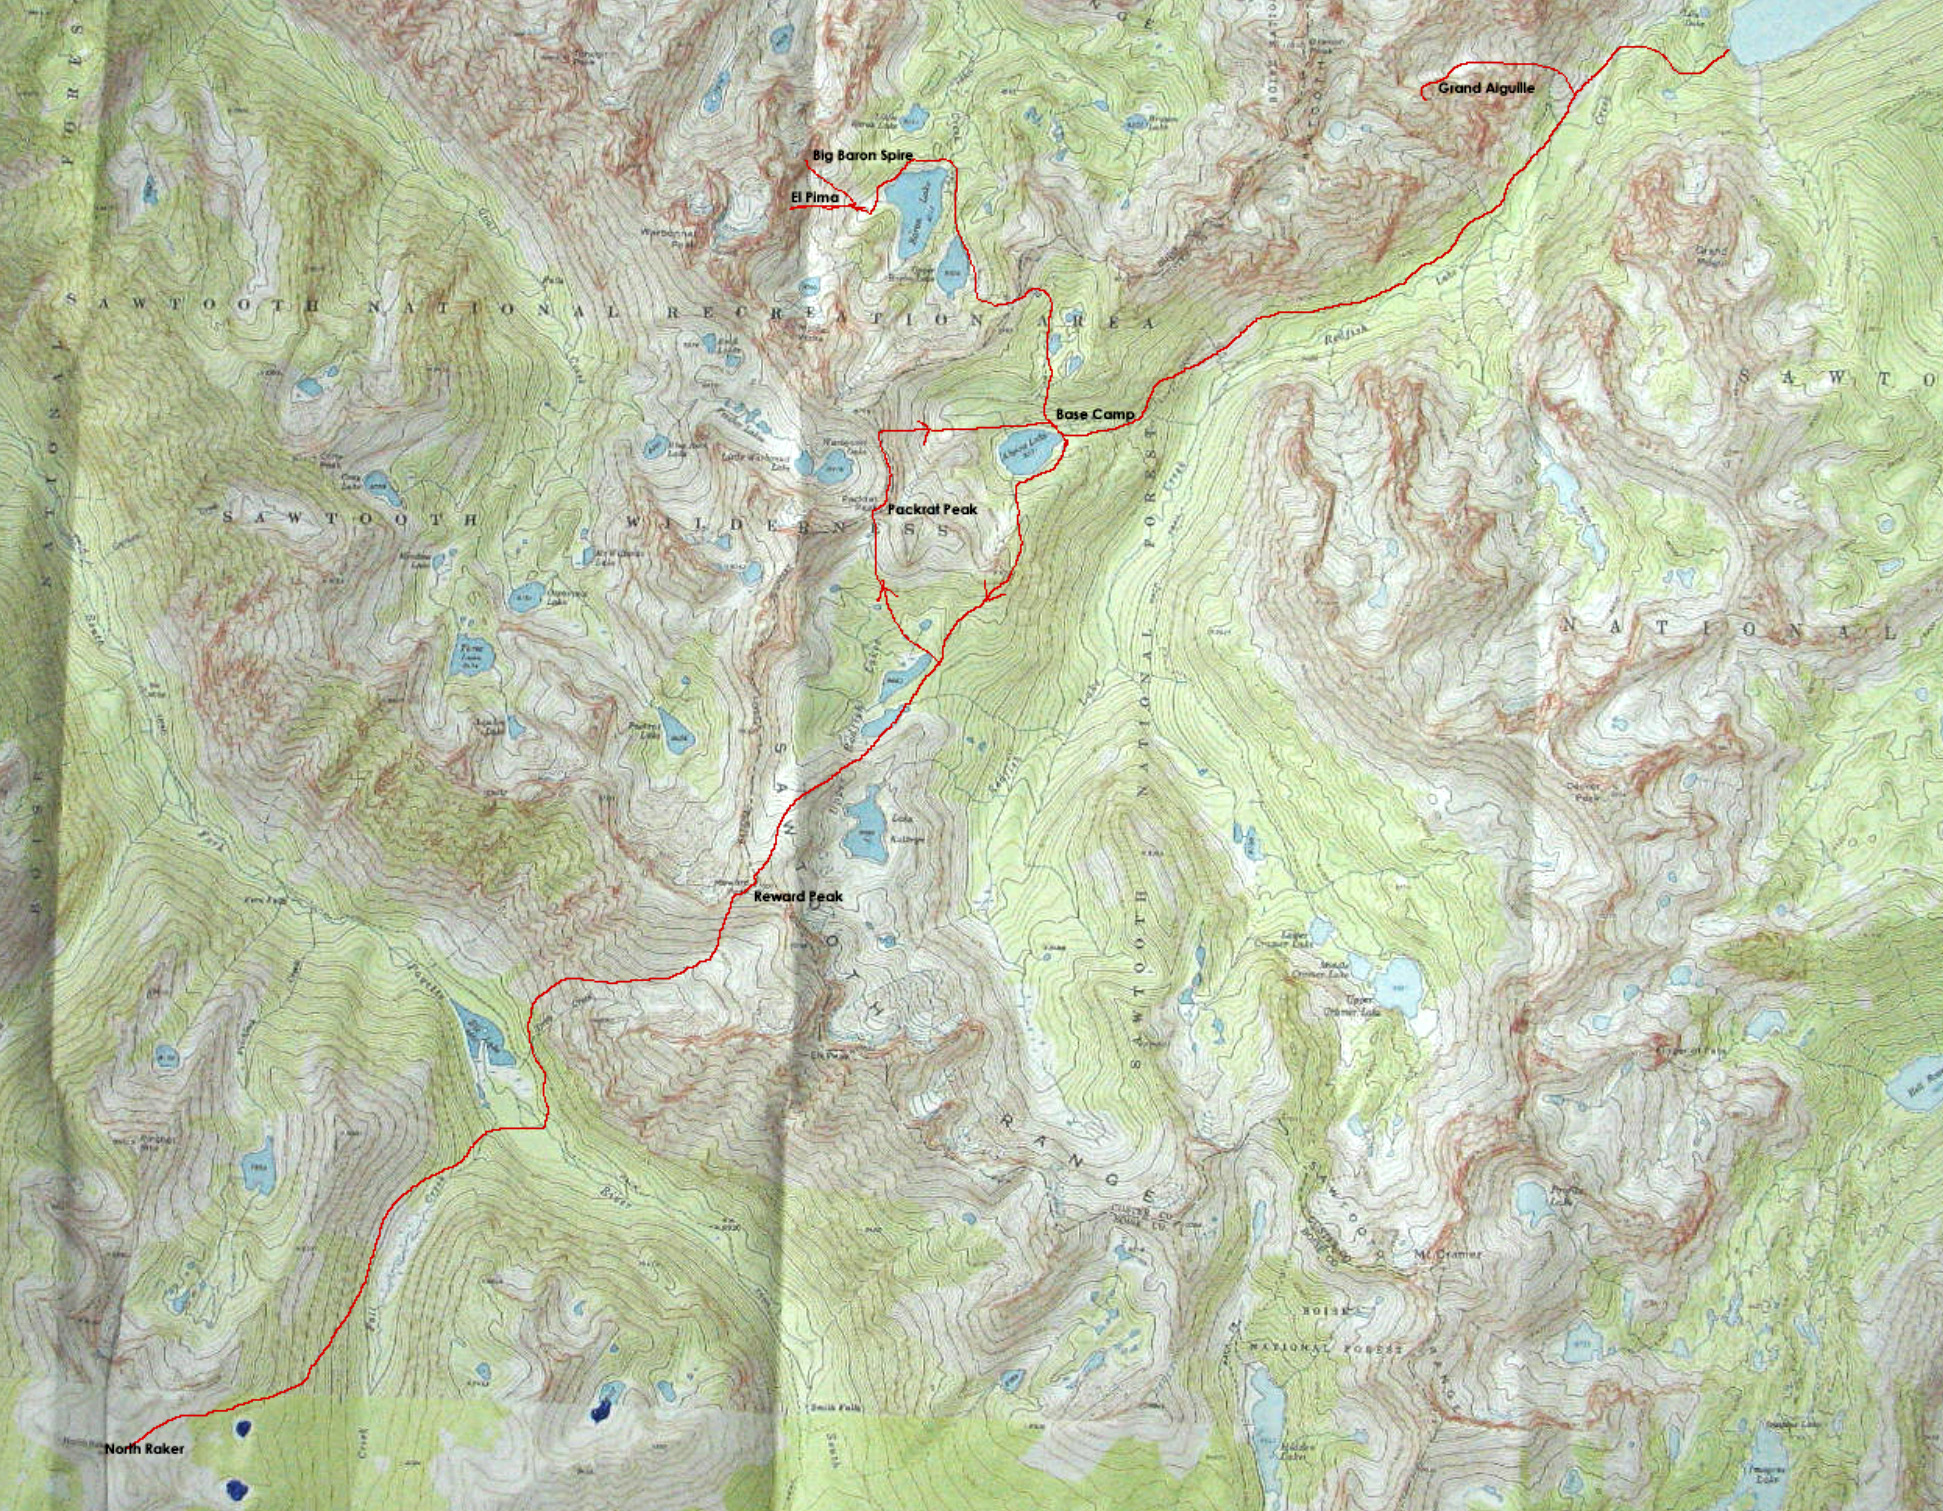 Map of the Sawtooth adventure area with routes taken marked in red.